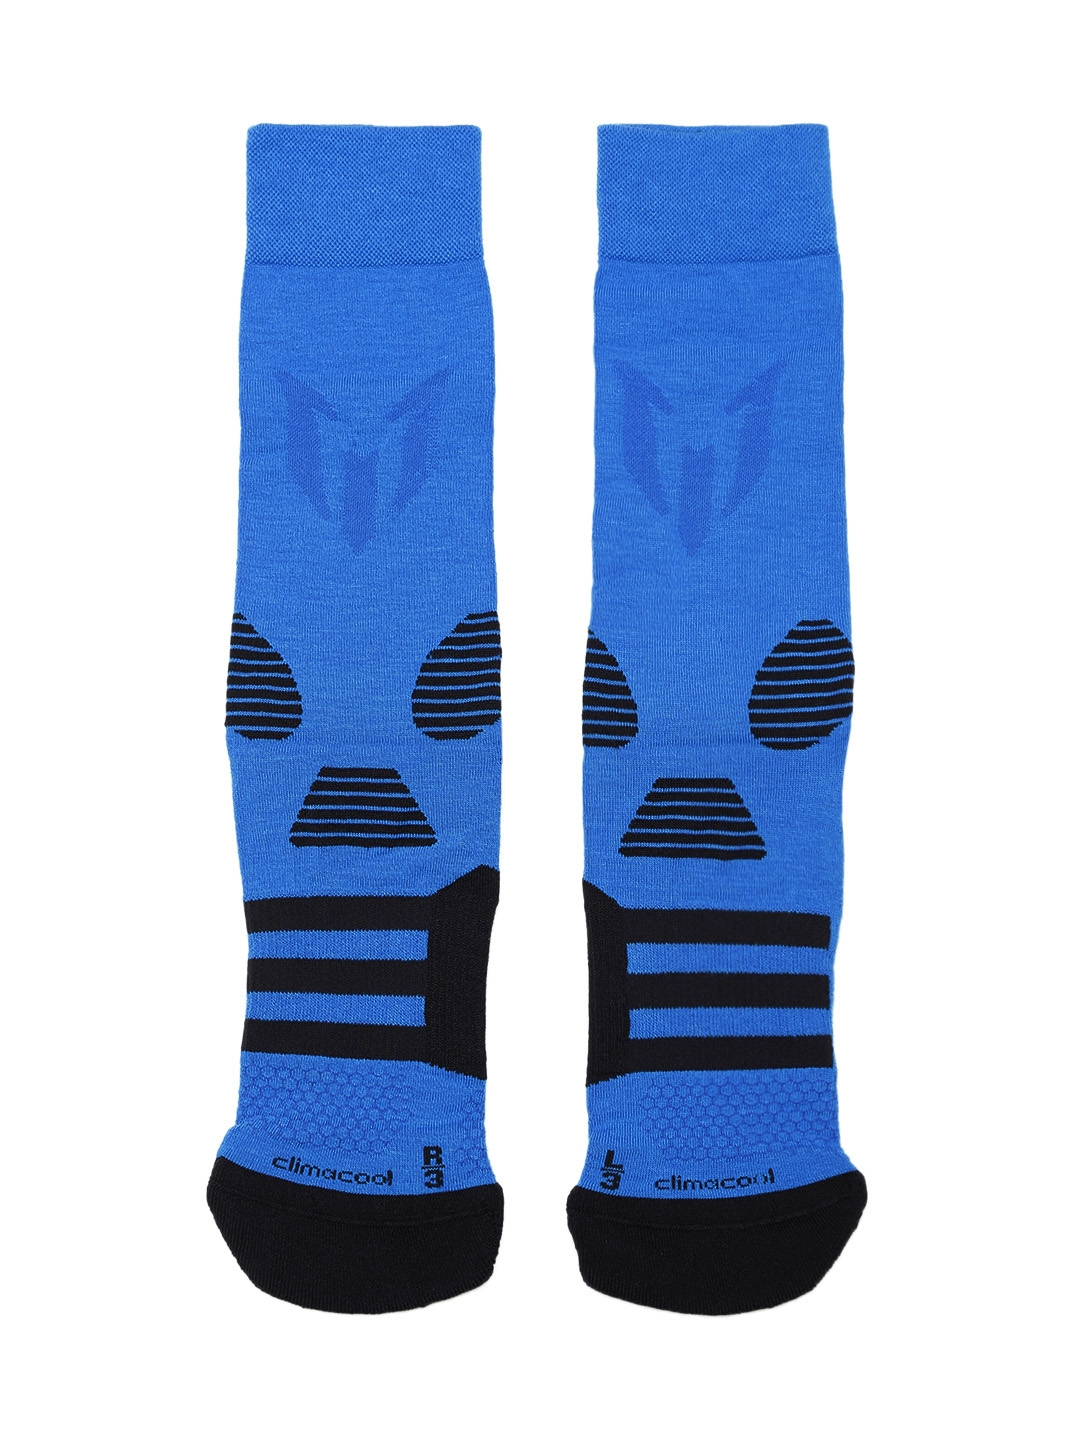 ADIDAS Unisex Blue MESSI Q3 Patterned Above Ankle Length Socks